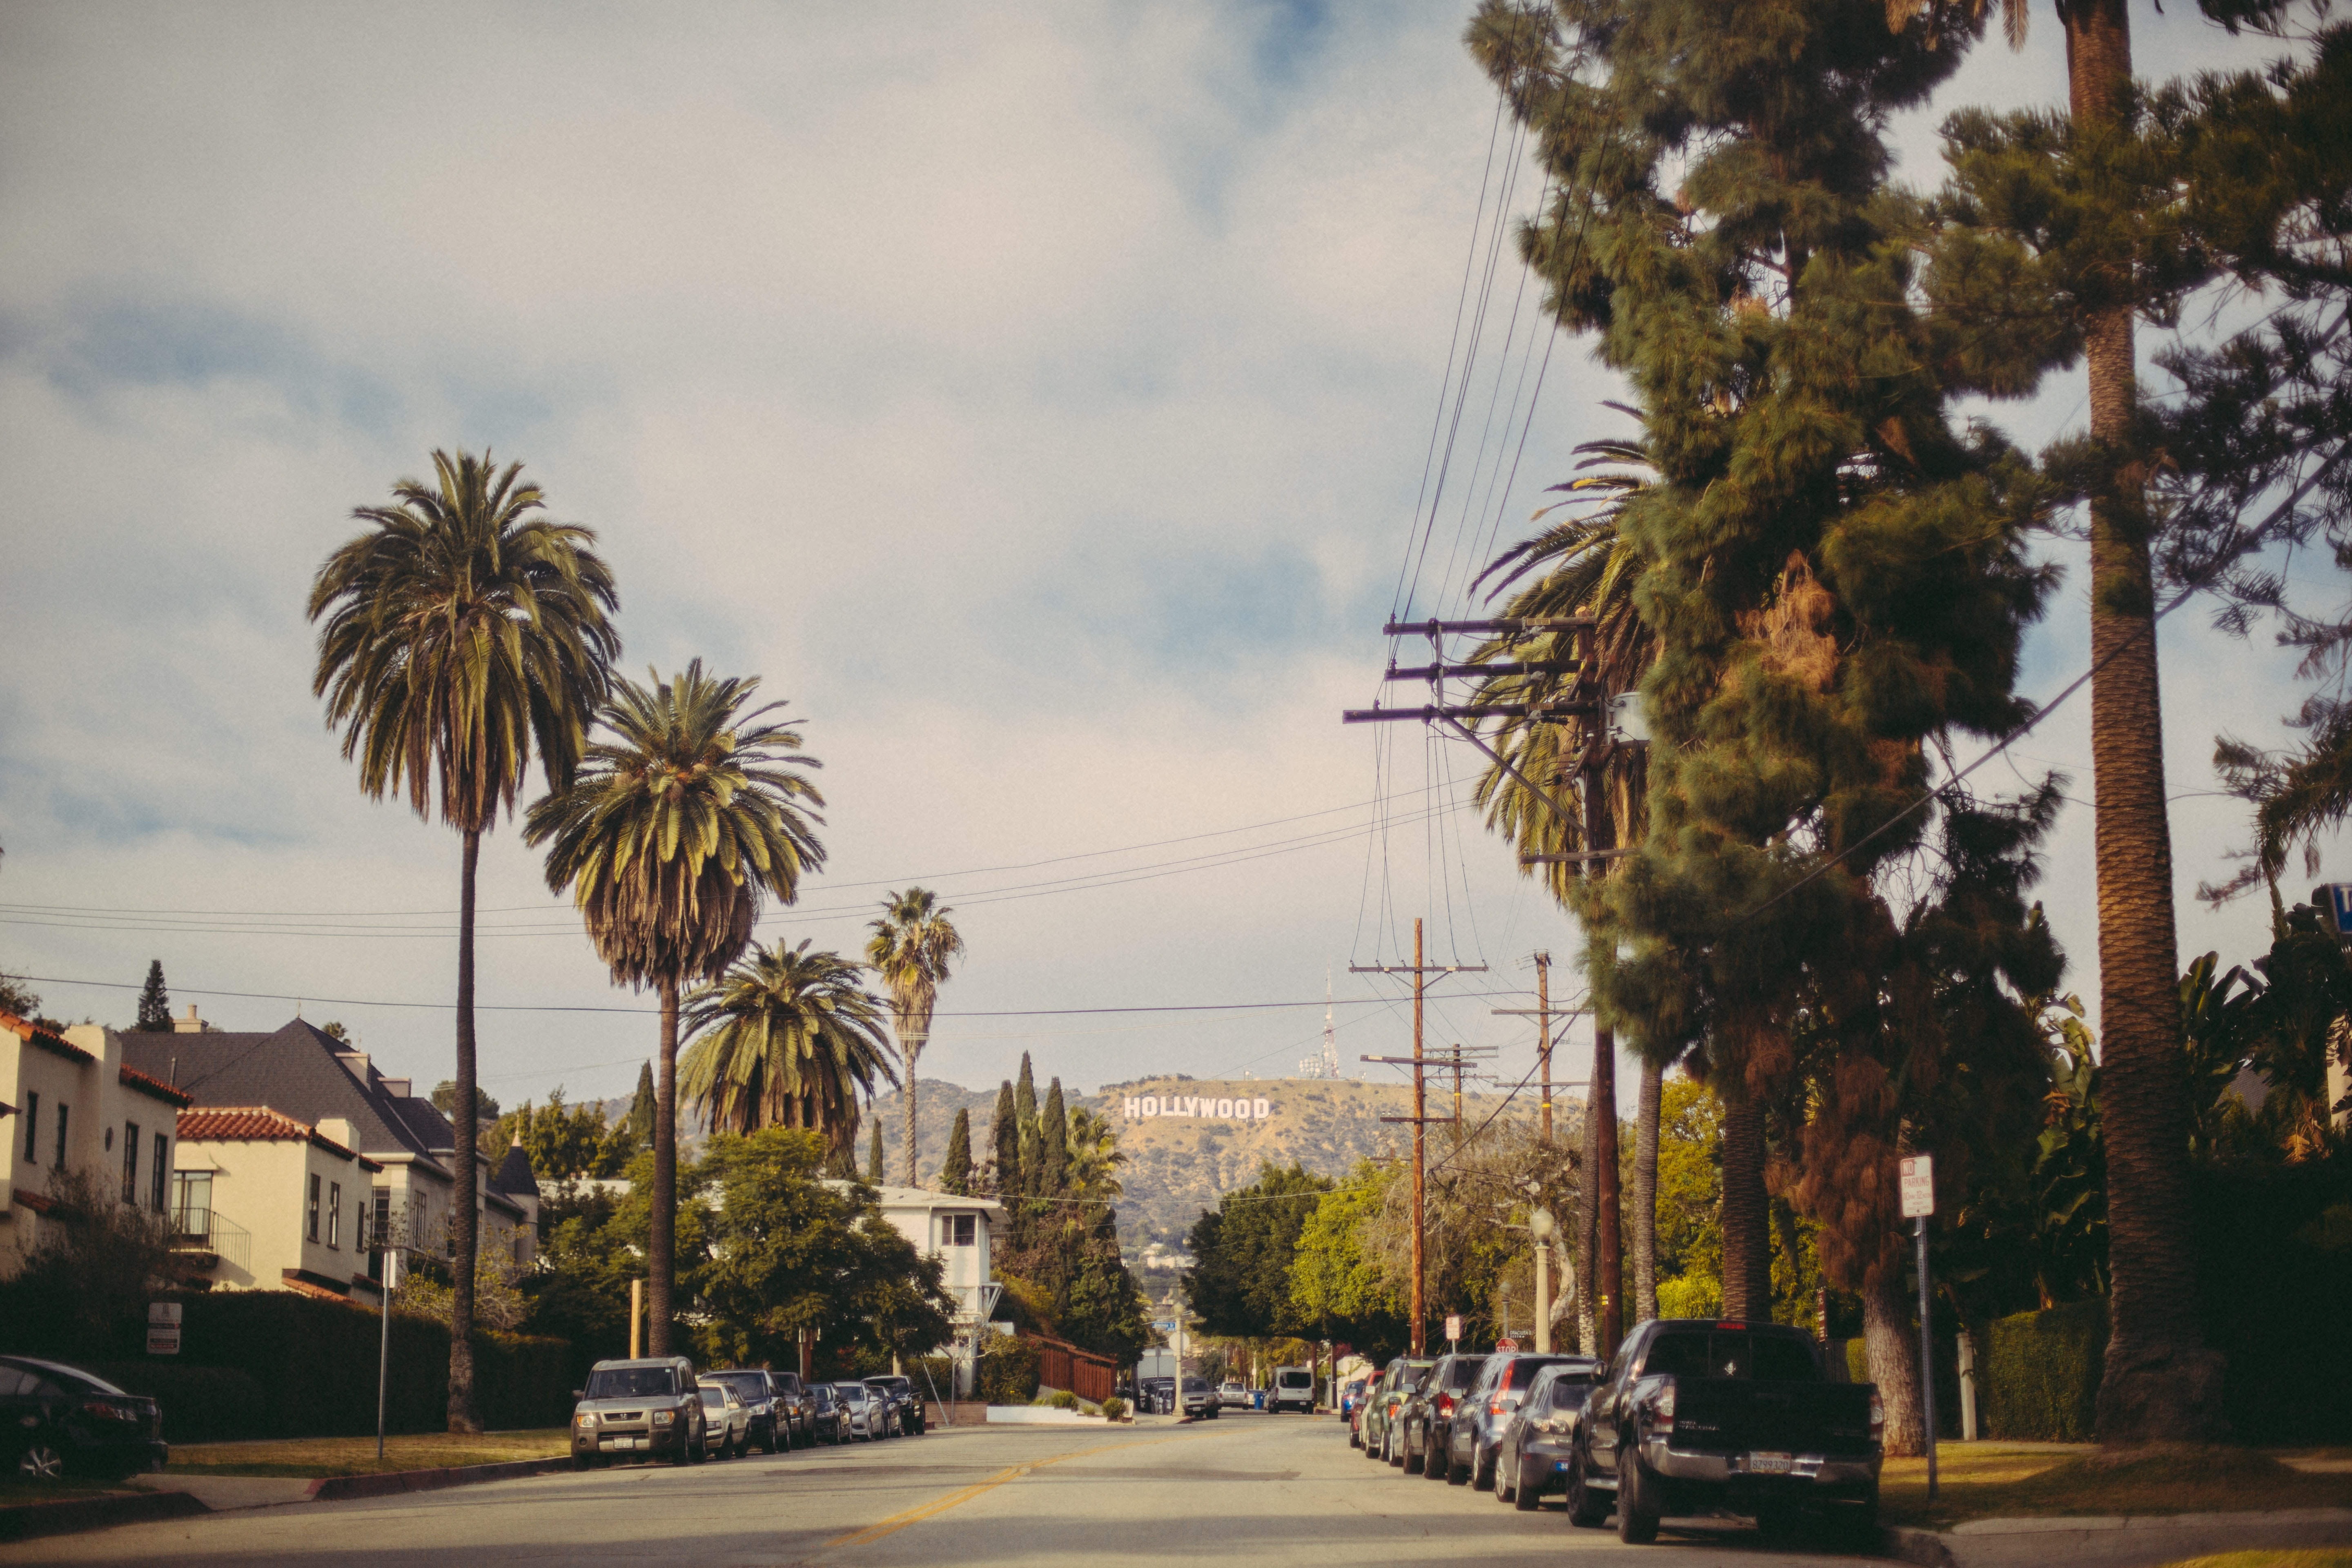 A street in Beverly Hills that's lined with palm trees and has a view of the Hollywood sign